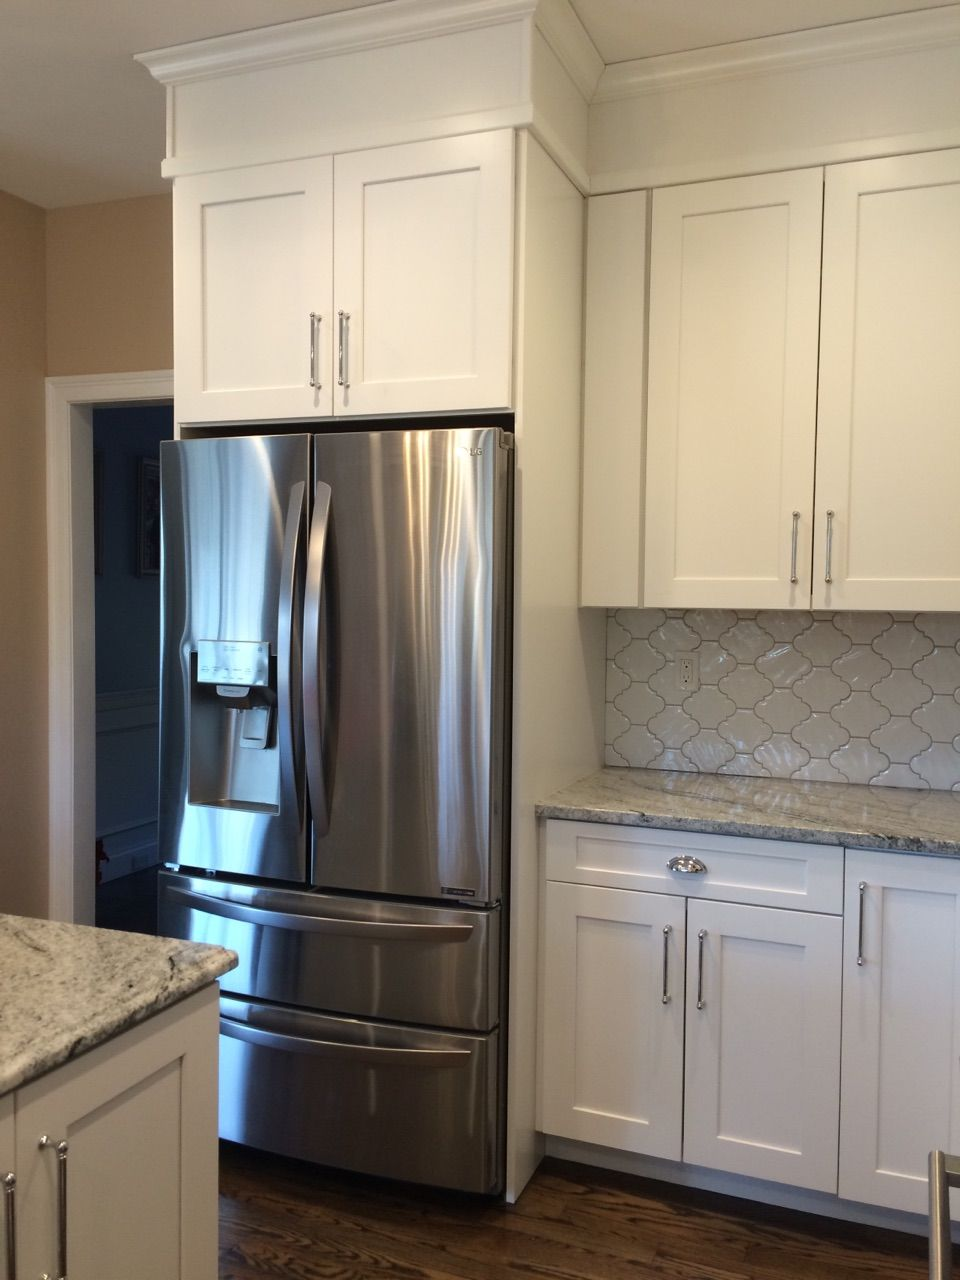 Waypoint 650f Painted Linen Cabinets Kitchen Cabinets To Ceiling Kitchen Renovation Home Kitchens